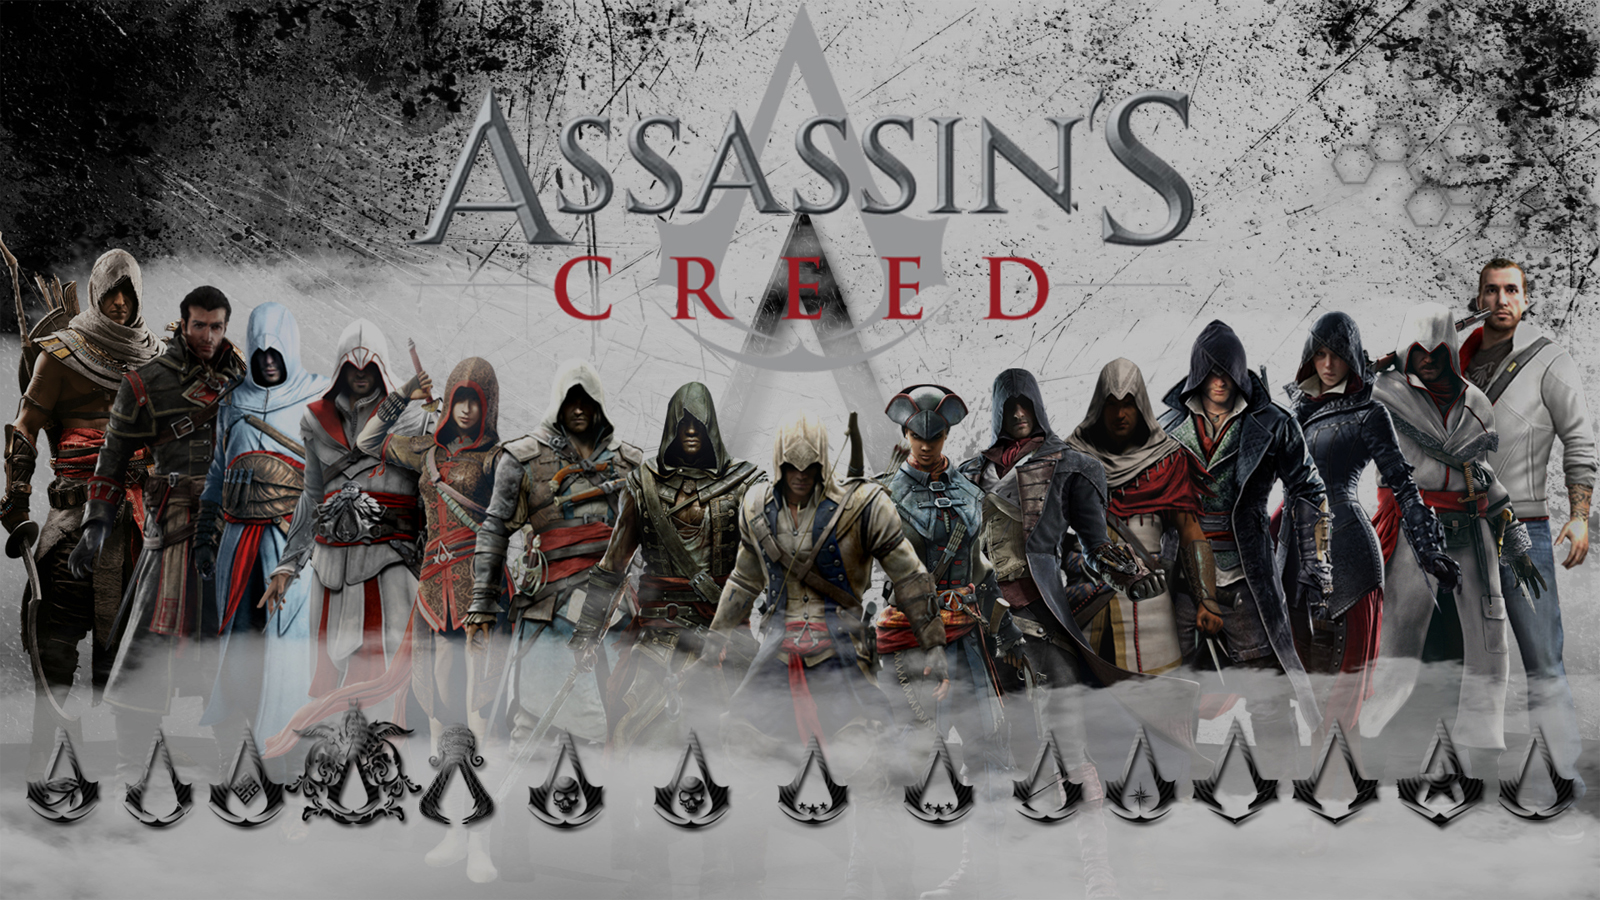 All assassins wallpaper and background image 1600x900 id 886902 wallpaper abyss - Assasins wallpaper ...